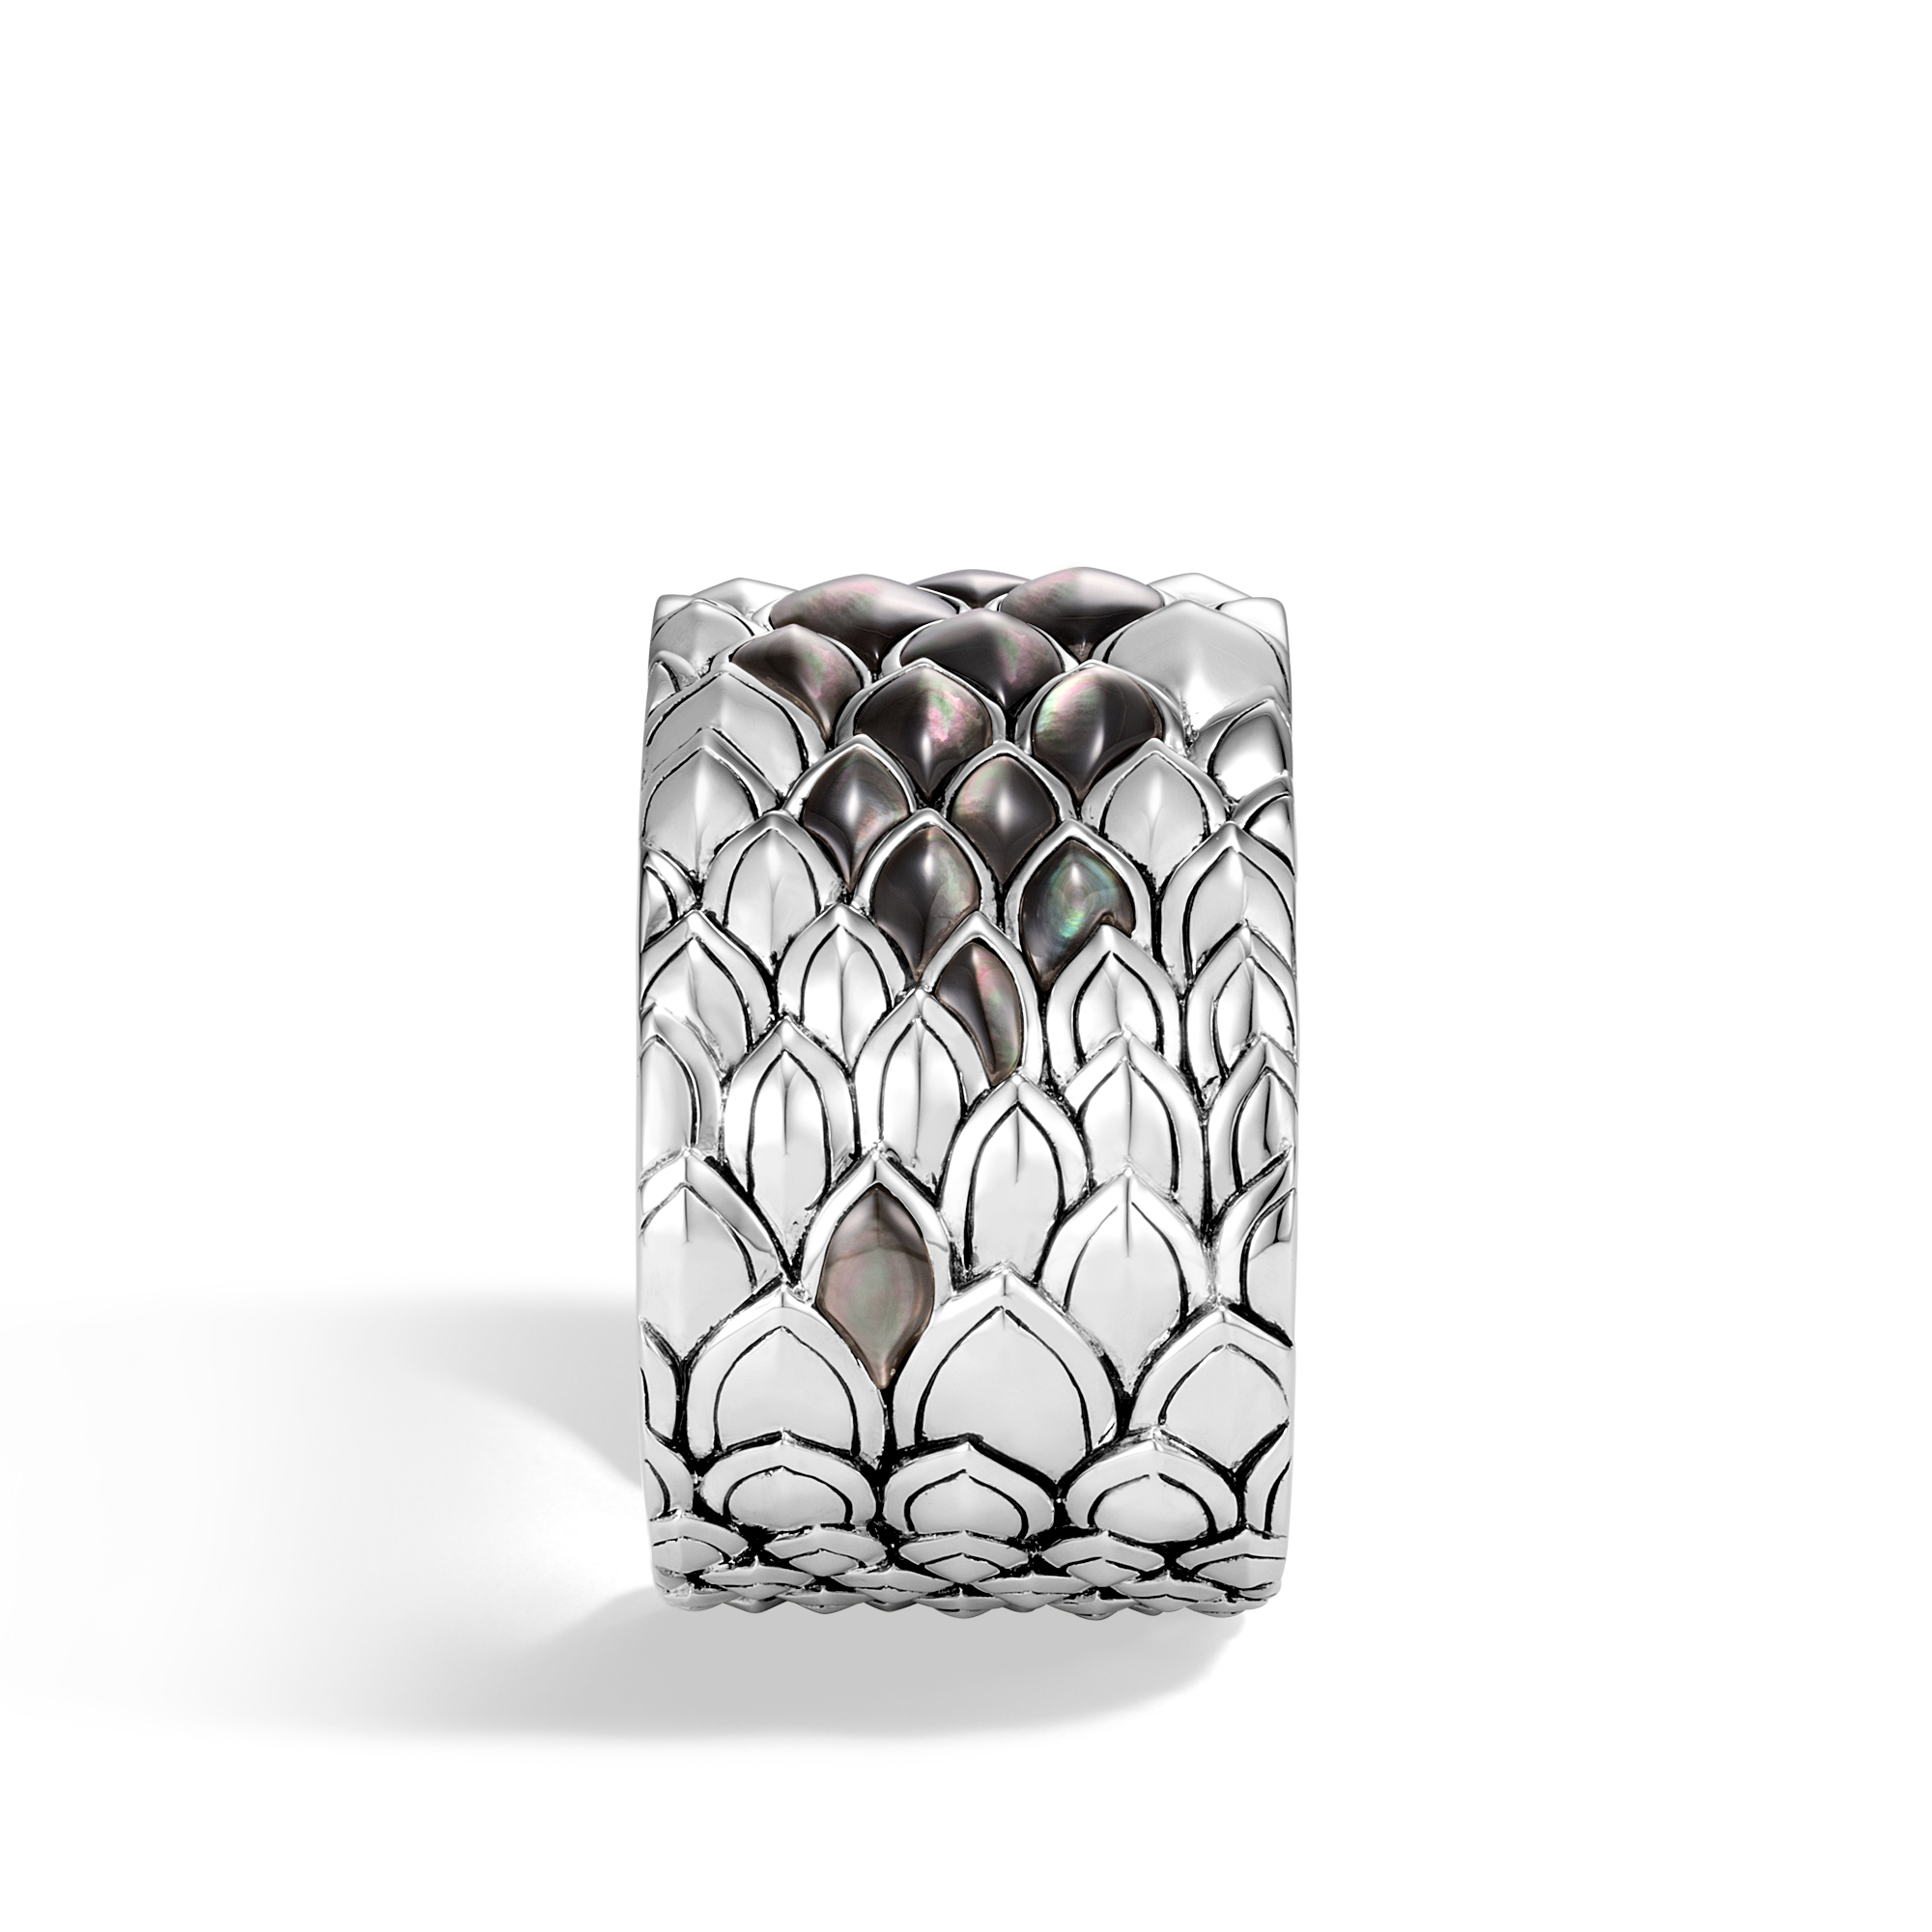 Legends Naga 40MM Kick Cuff in Silver with Gemstone, Grey Mother of Pearl, large